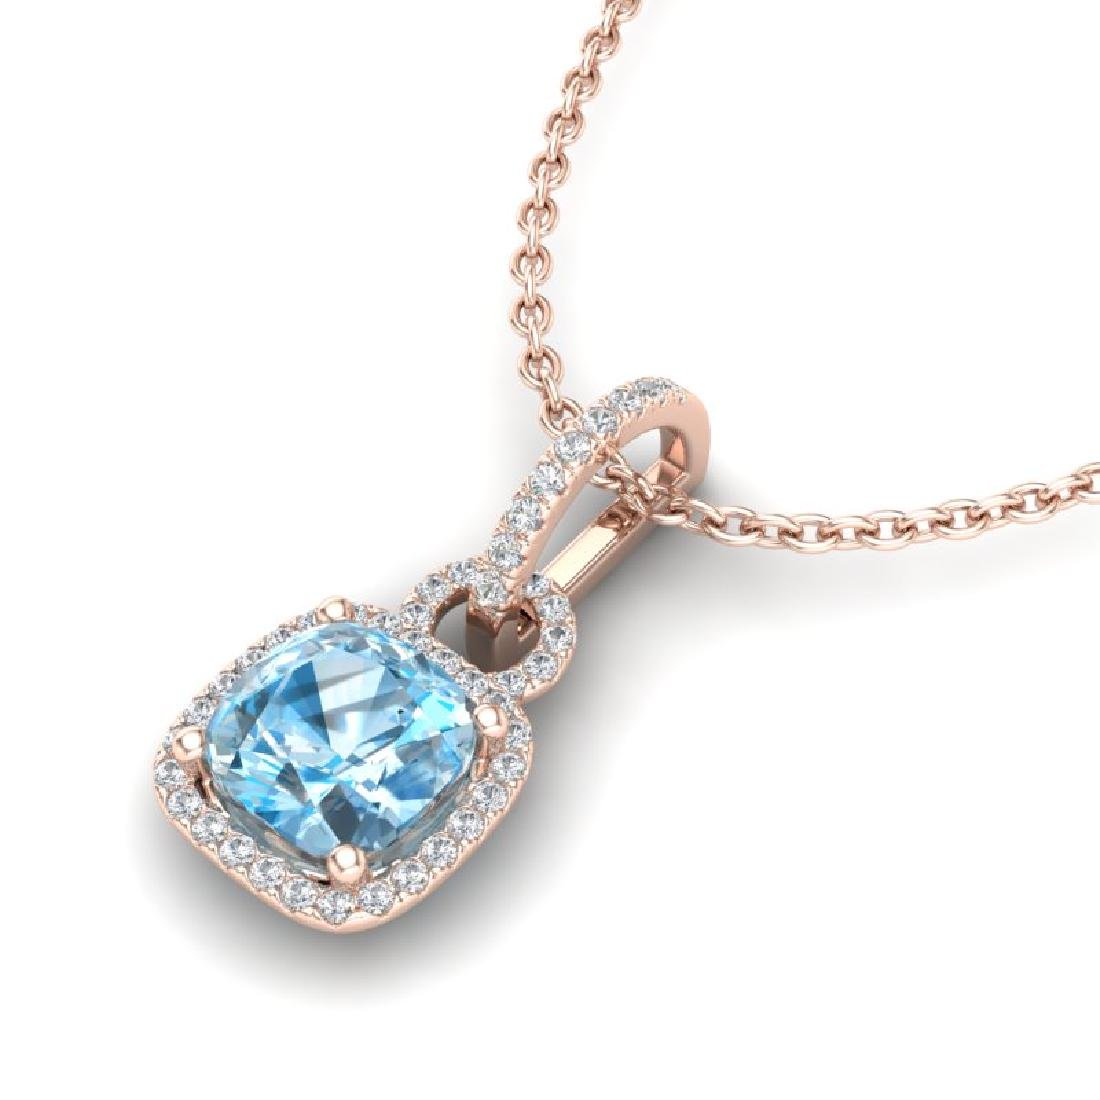 3.50 CTW Topaz & Micro VS/SI Diamond Necklace 14K Rose